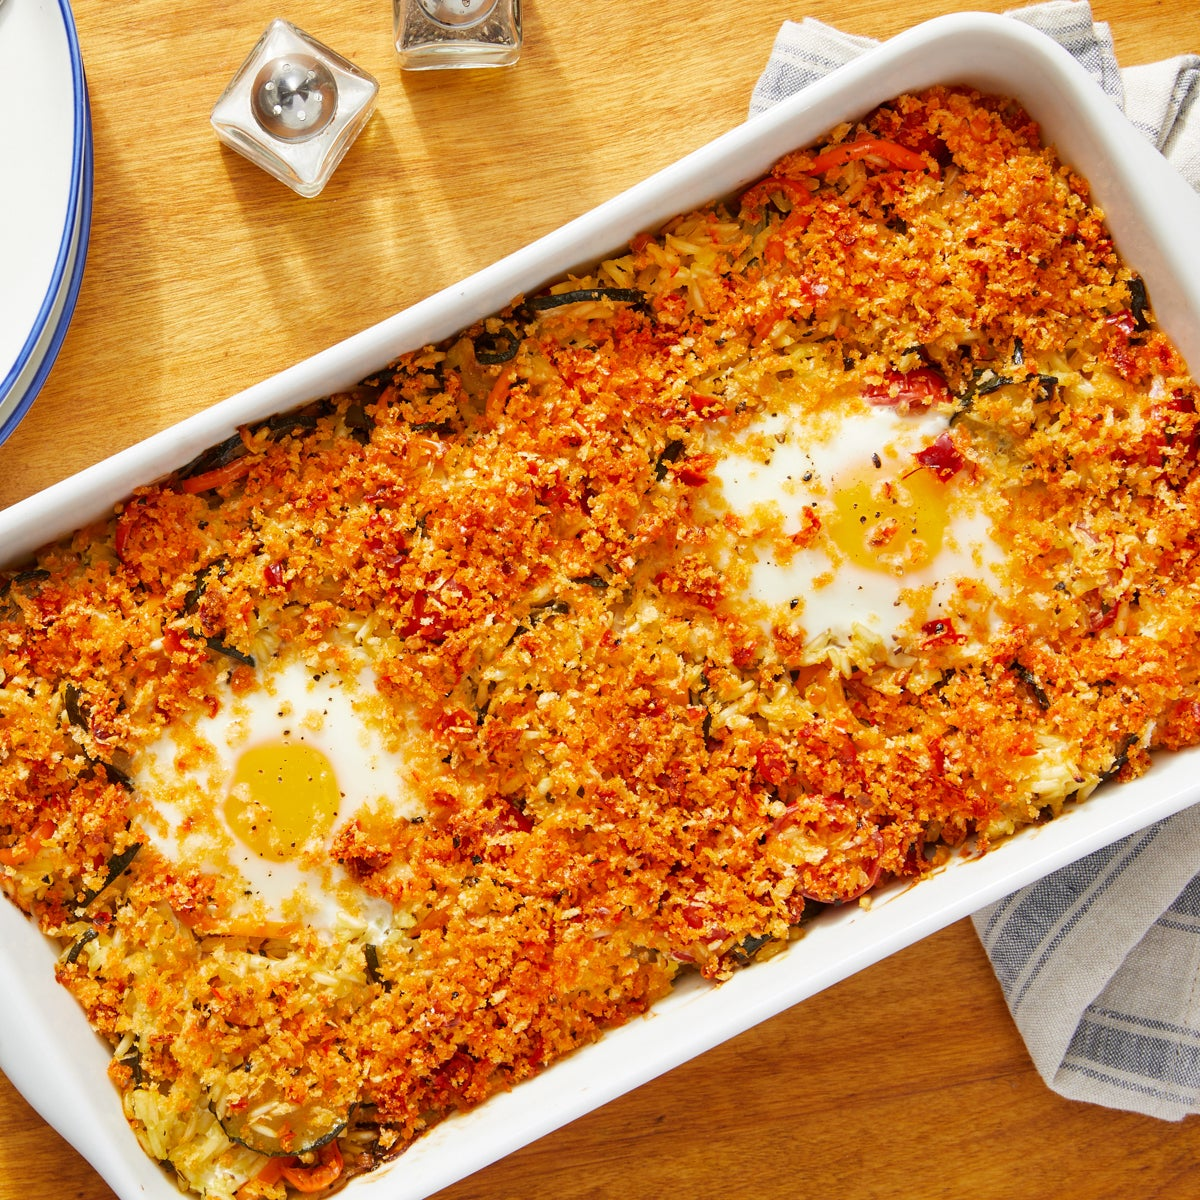 Baked Eggs & Saffron Rice with Zucchini, Tomatoes & Sweet Peppers